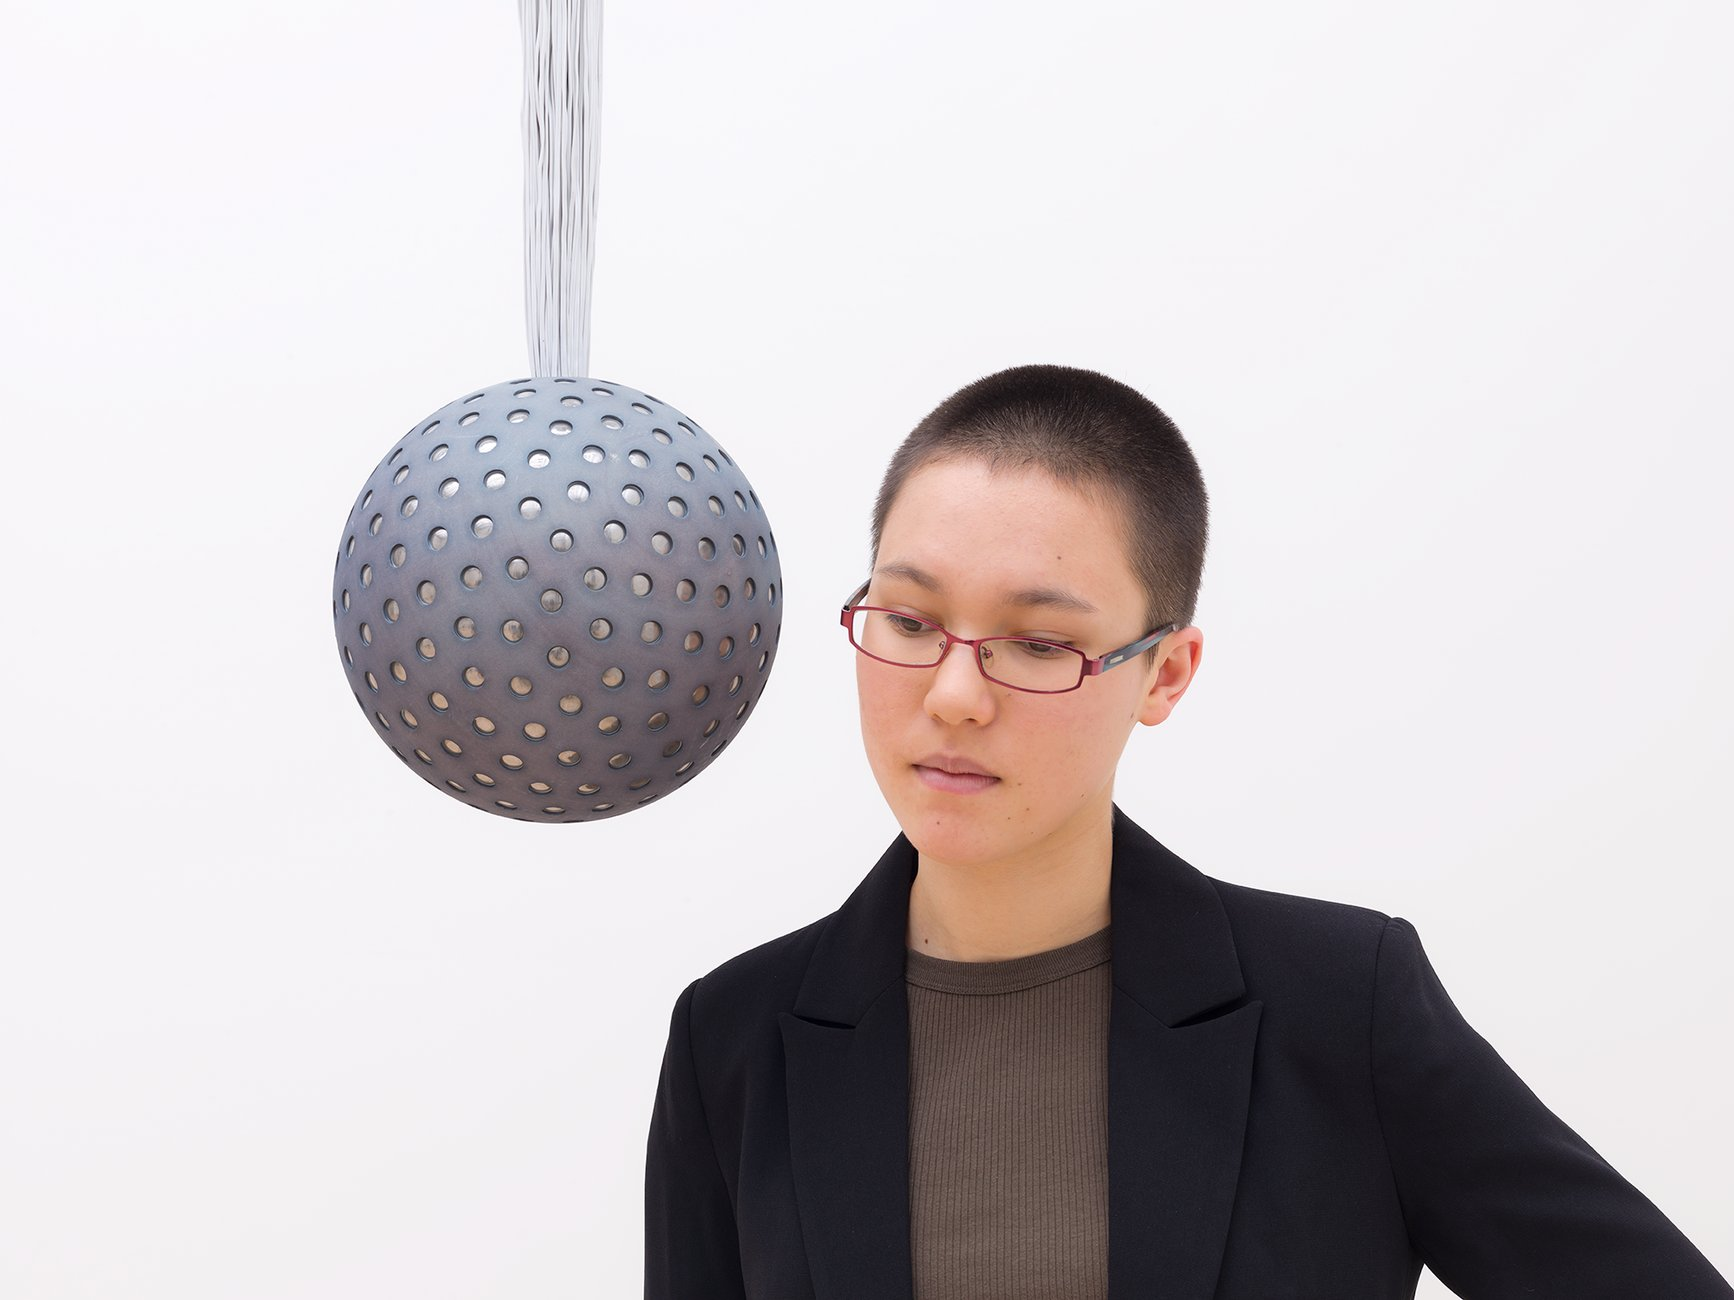 A woman wearing glasses with a shaved head leans into listen to a sphere suspended from the ceiling, Lozano-Hemmer, Soundtracks